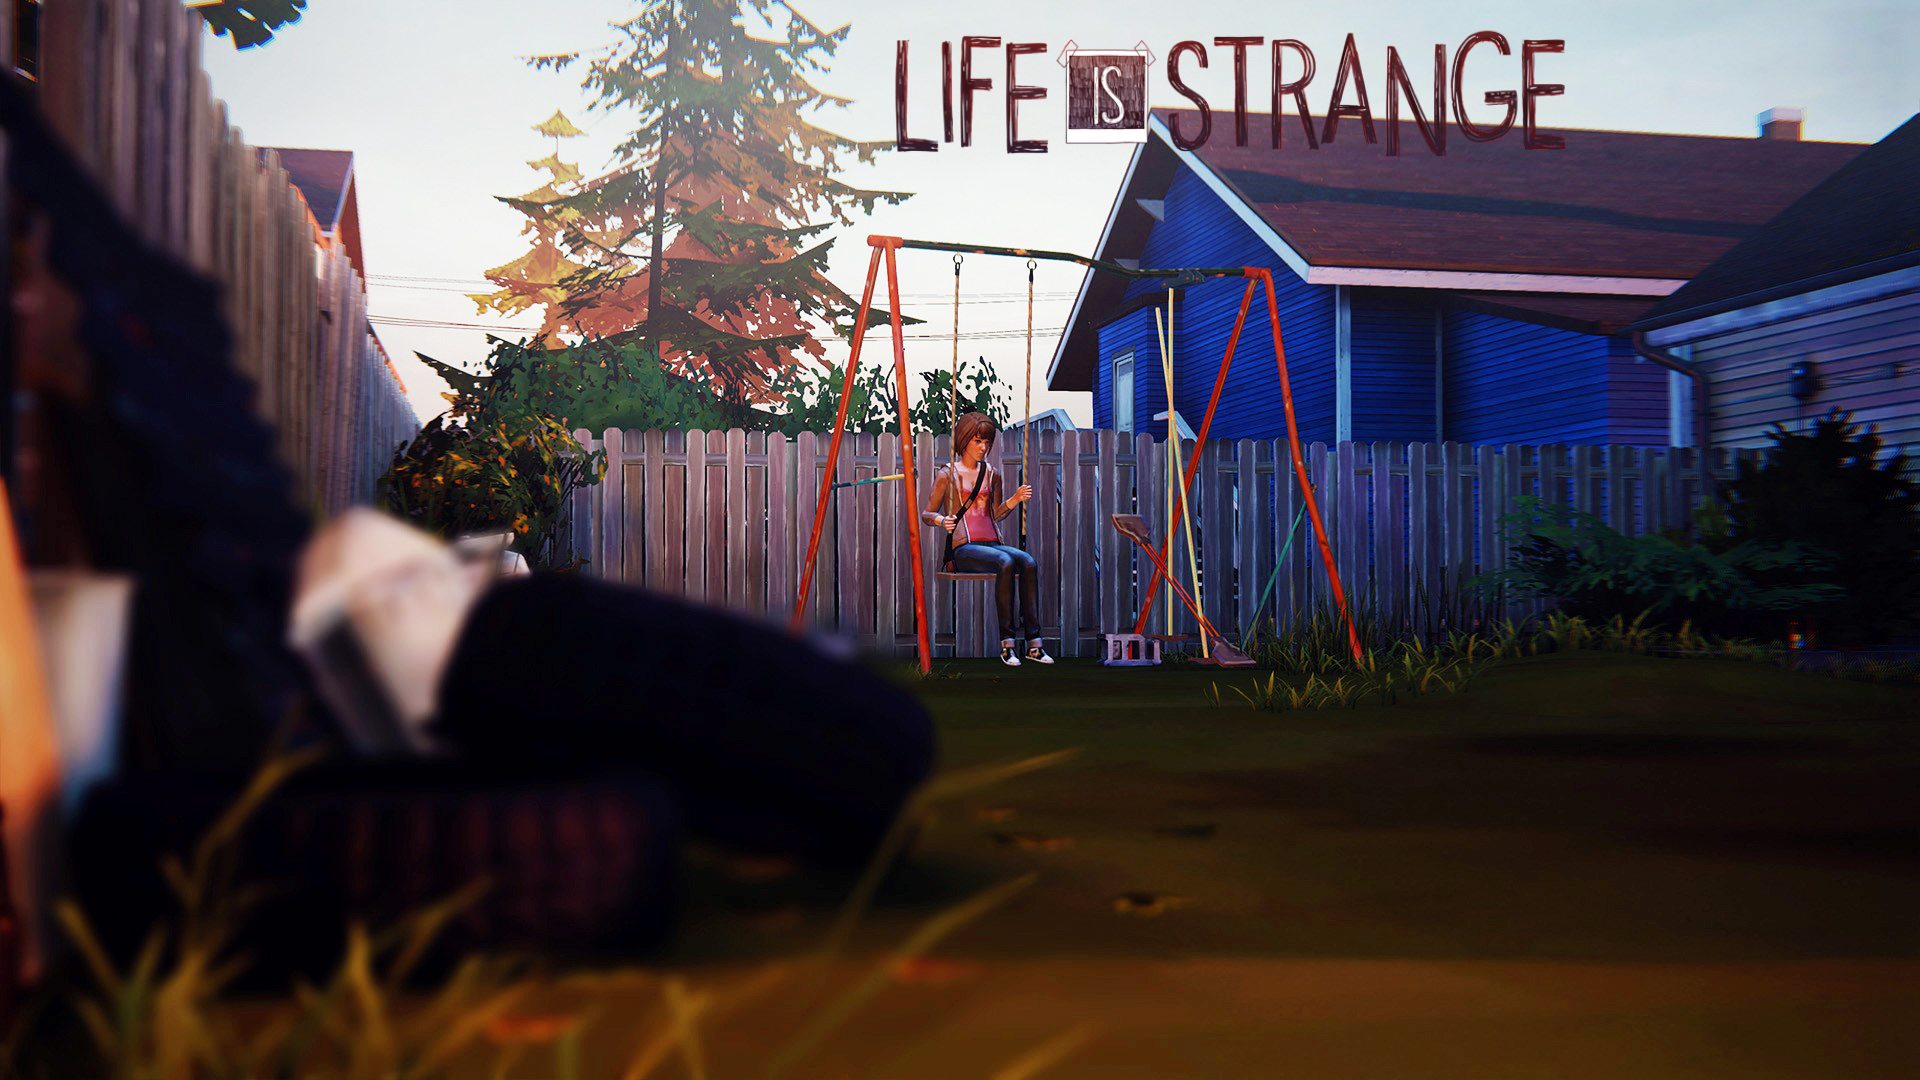 Life Is Strange - Chloe's House by KateWindhelm on DeviantArt